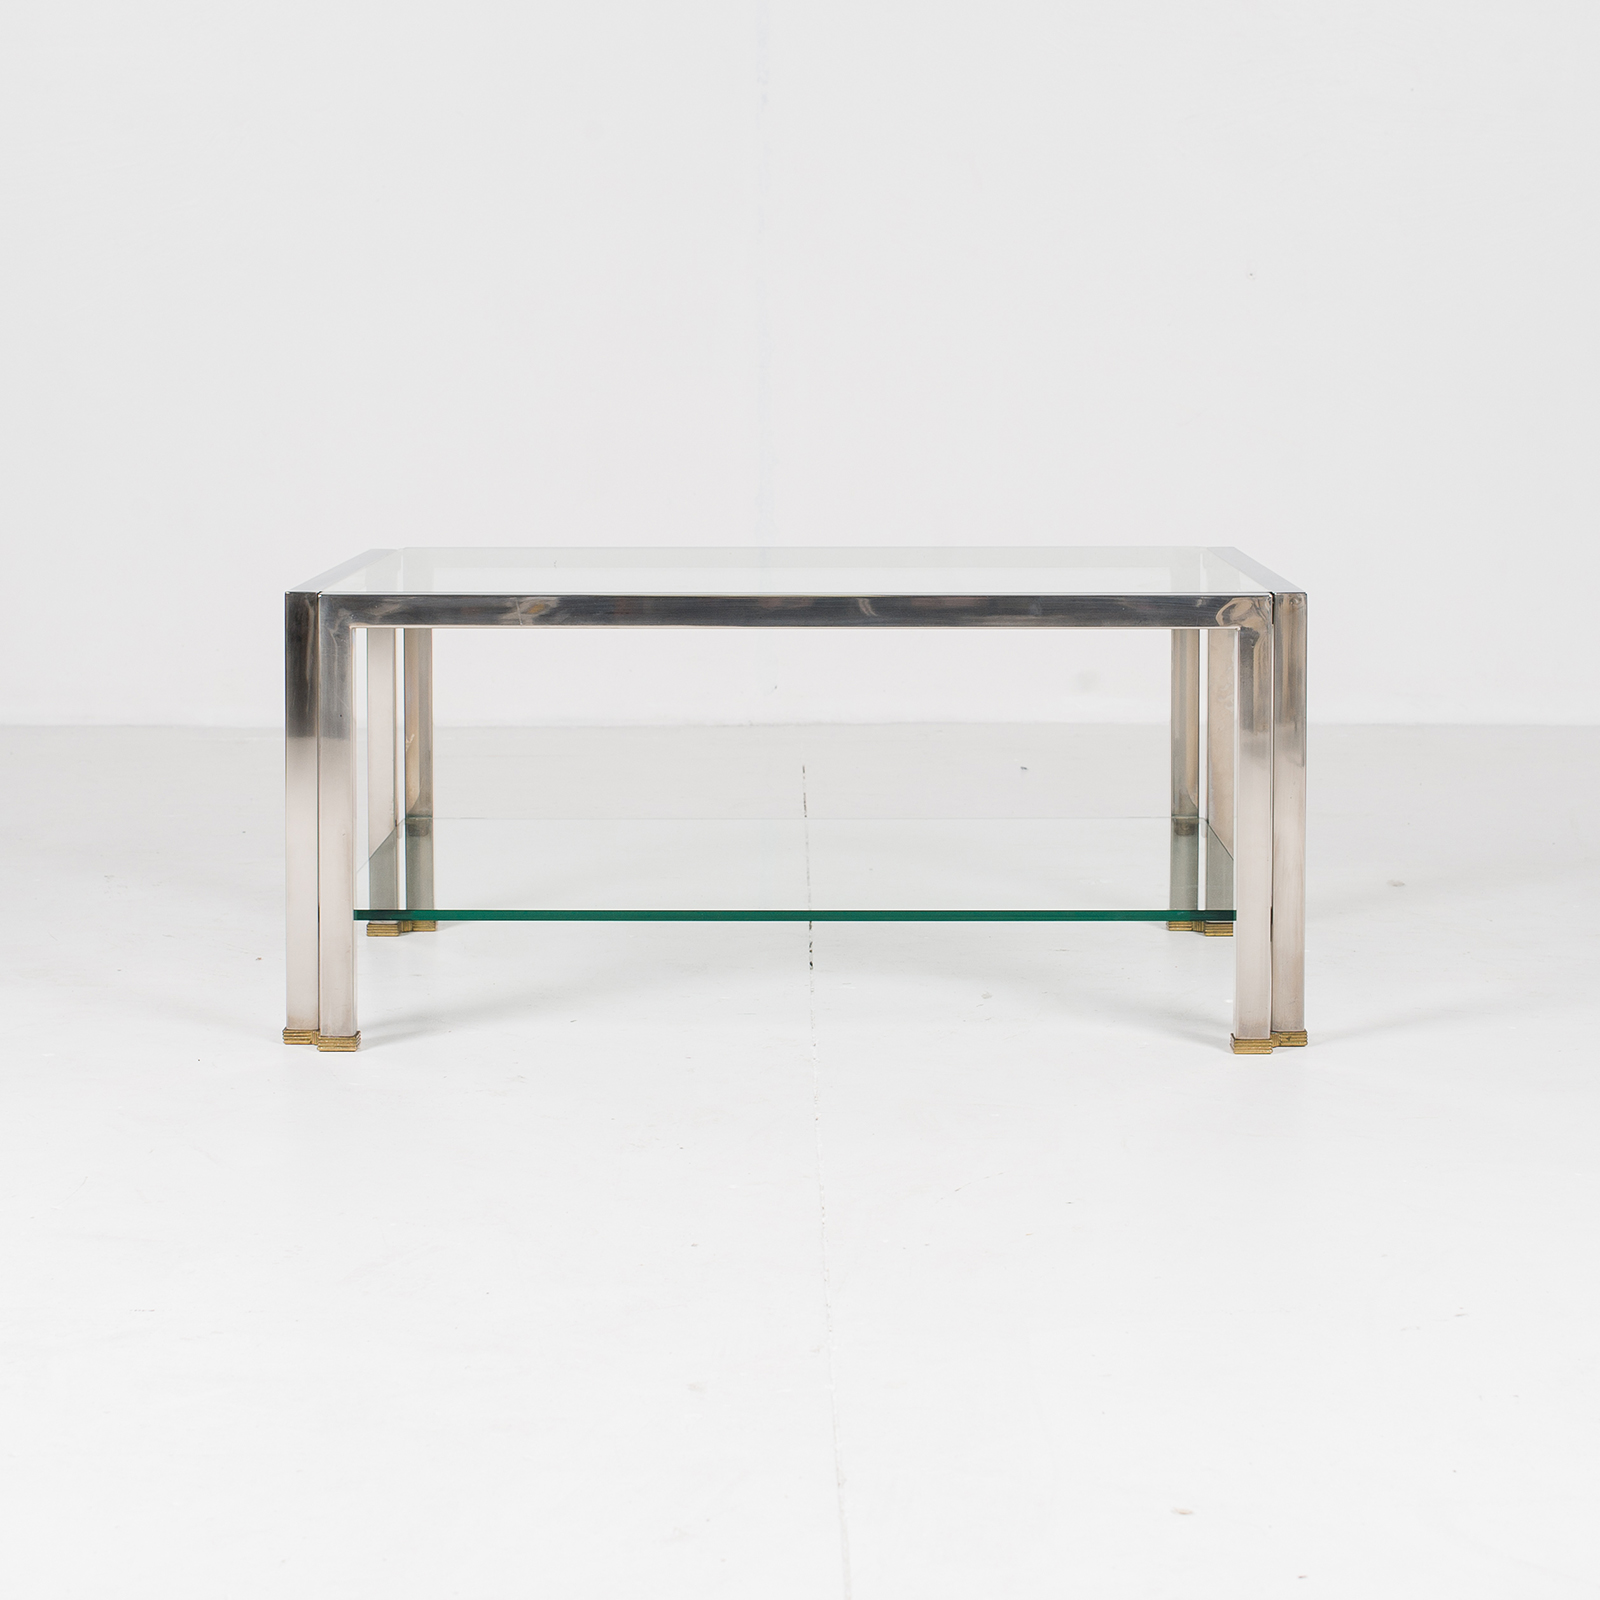 Coffee Table By Peter Ghyczy, 1970s, The Netherlands 2988